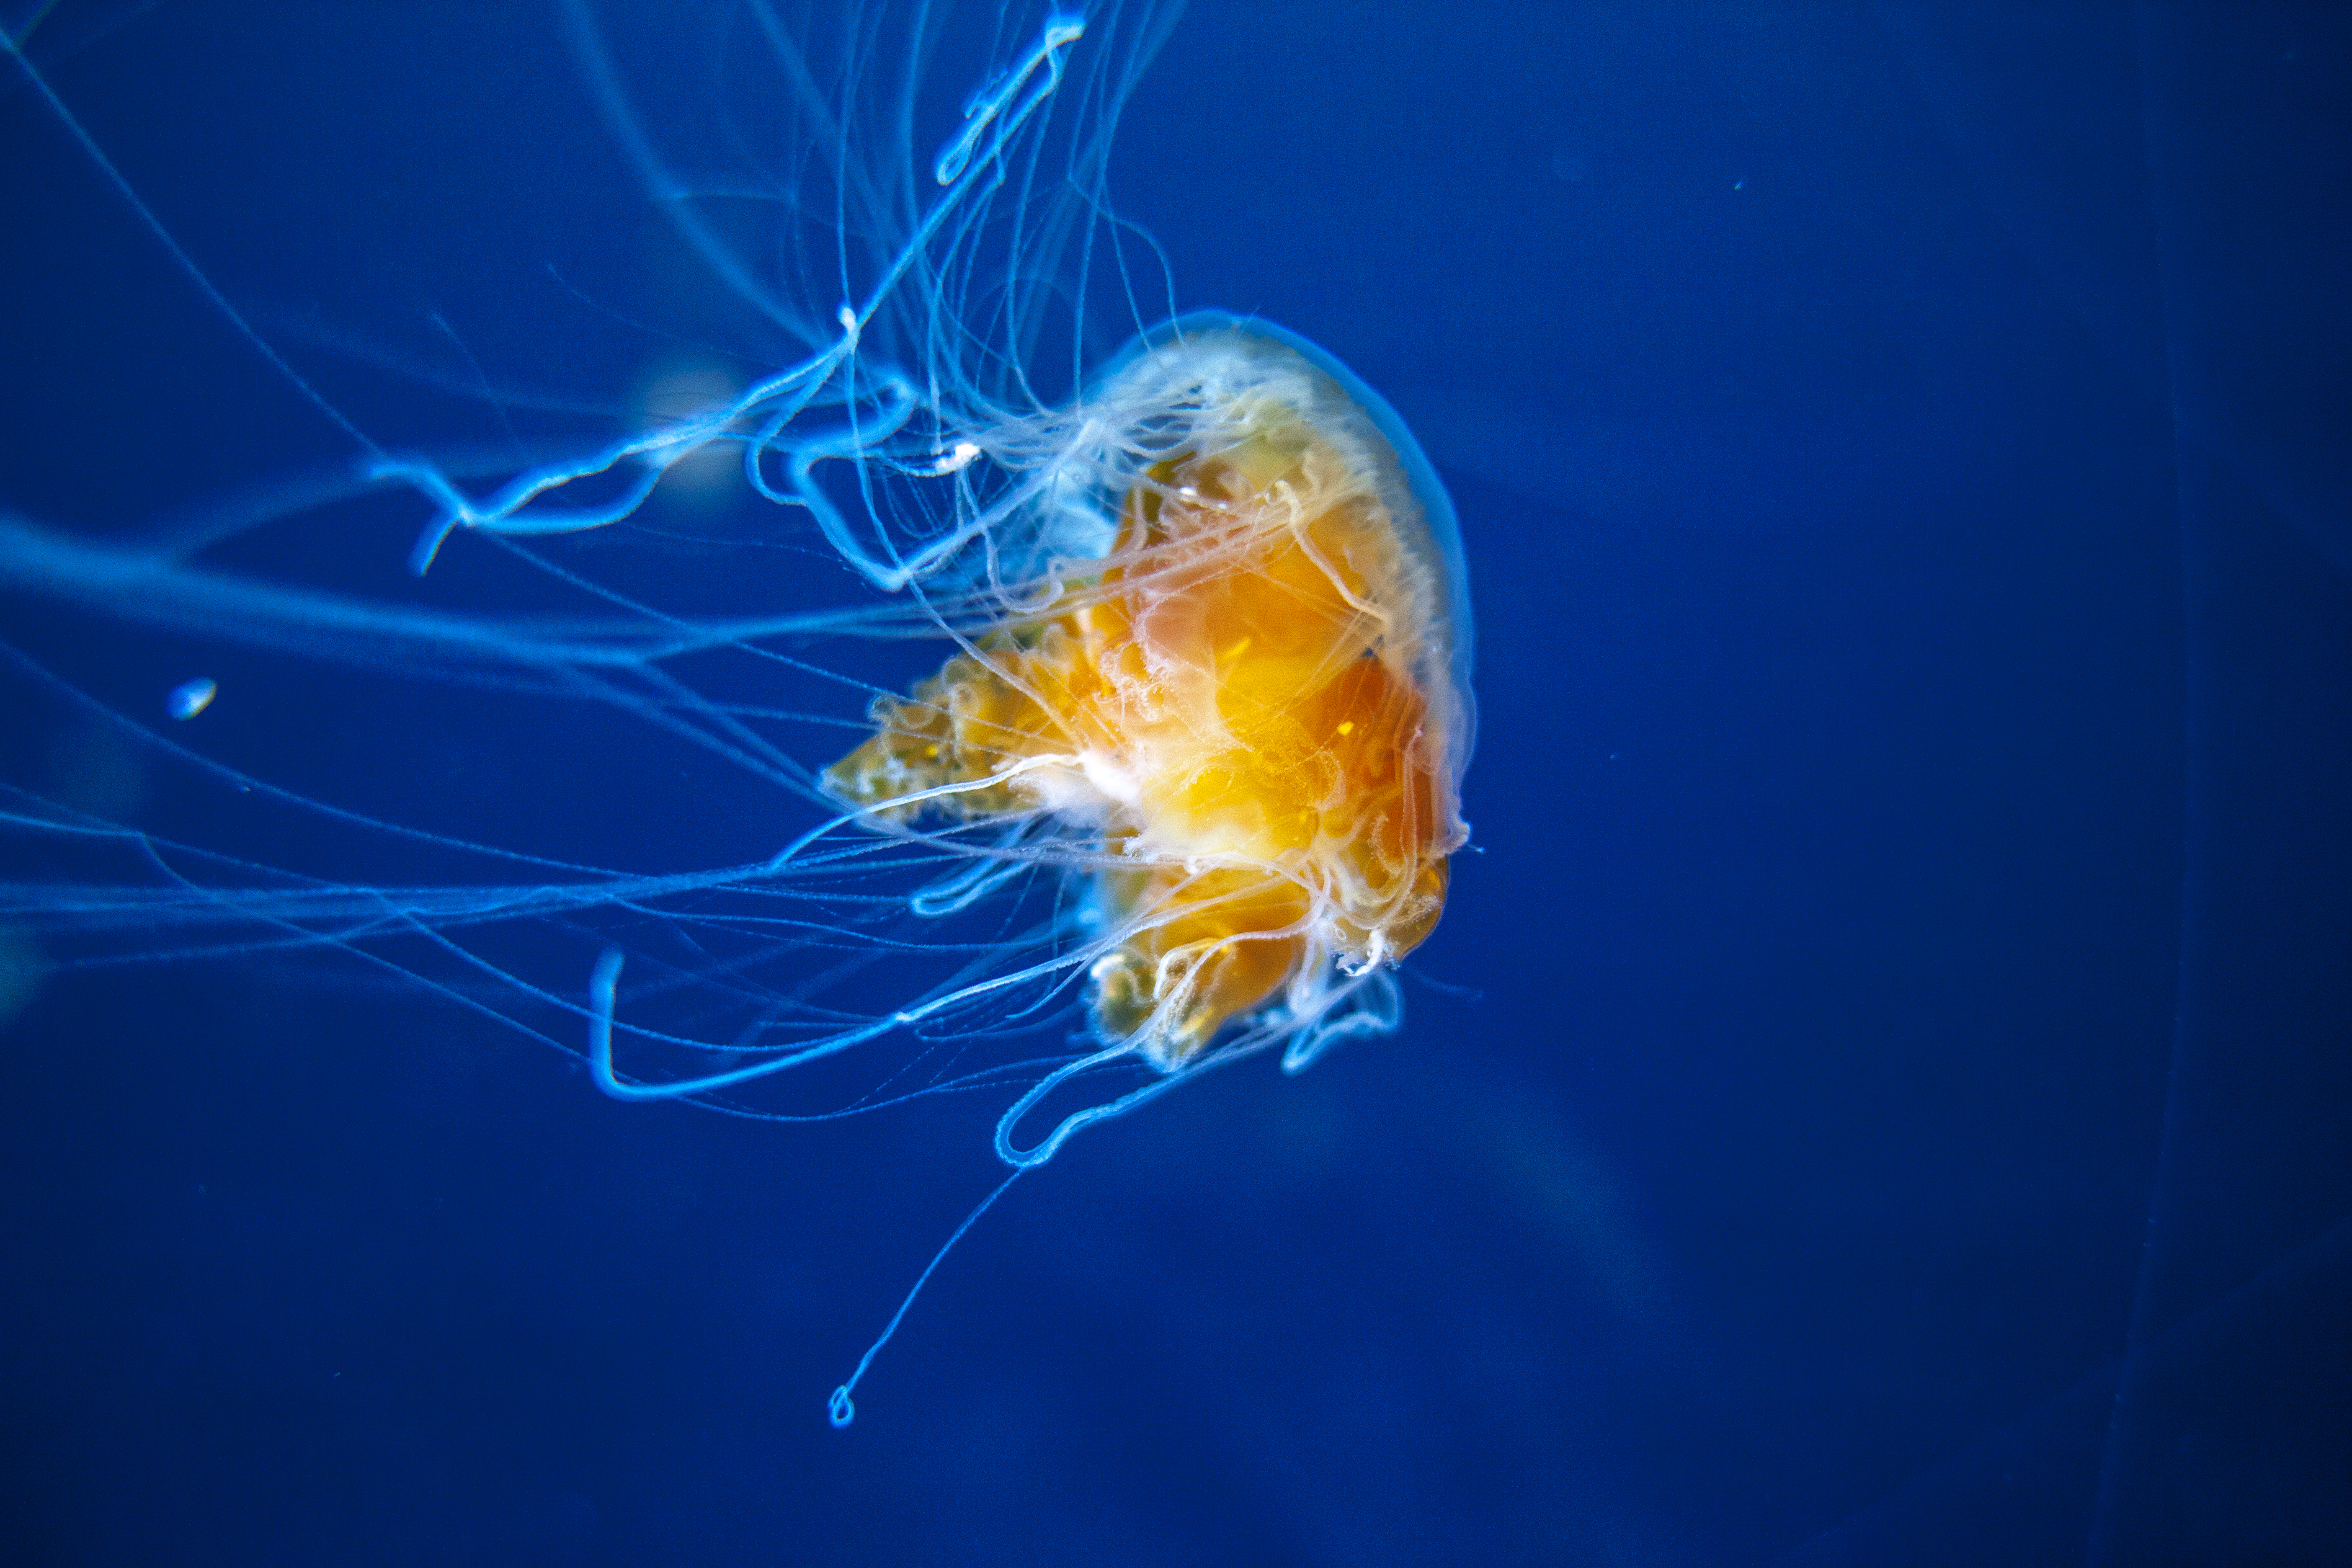 97730 download wallpaper Animals, Jellyfish, Swimming, Underwater World, Aquarium, Tentacles screensavers and pictures for free